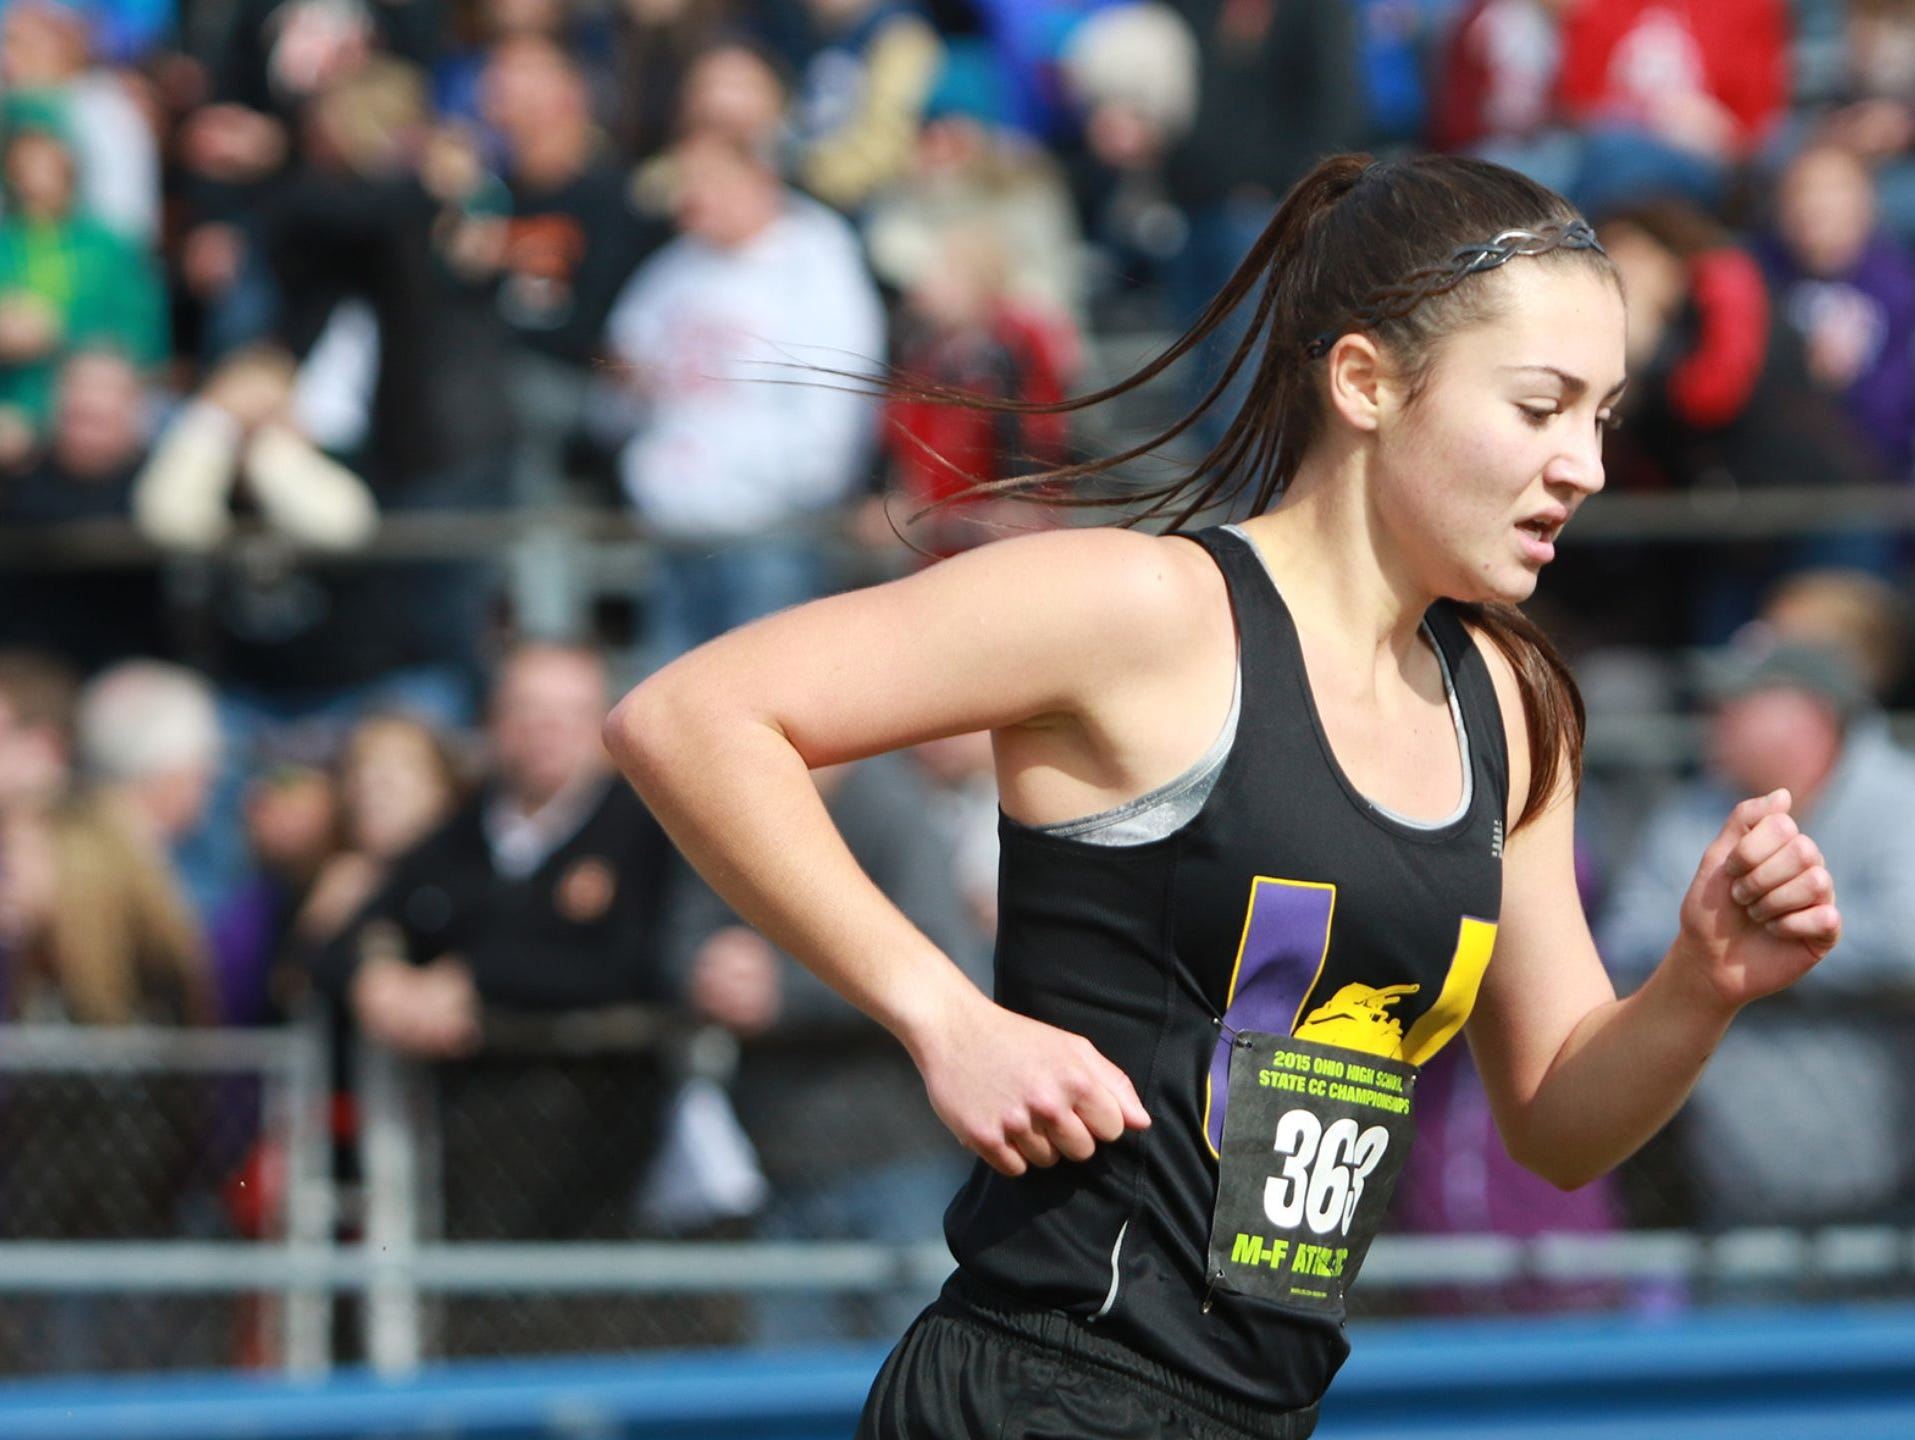 Unioto's Haley Wright participates in the Division II OHSAA state meet. Wright was named the 2015 Gazette Girls Runner of the Year.